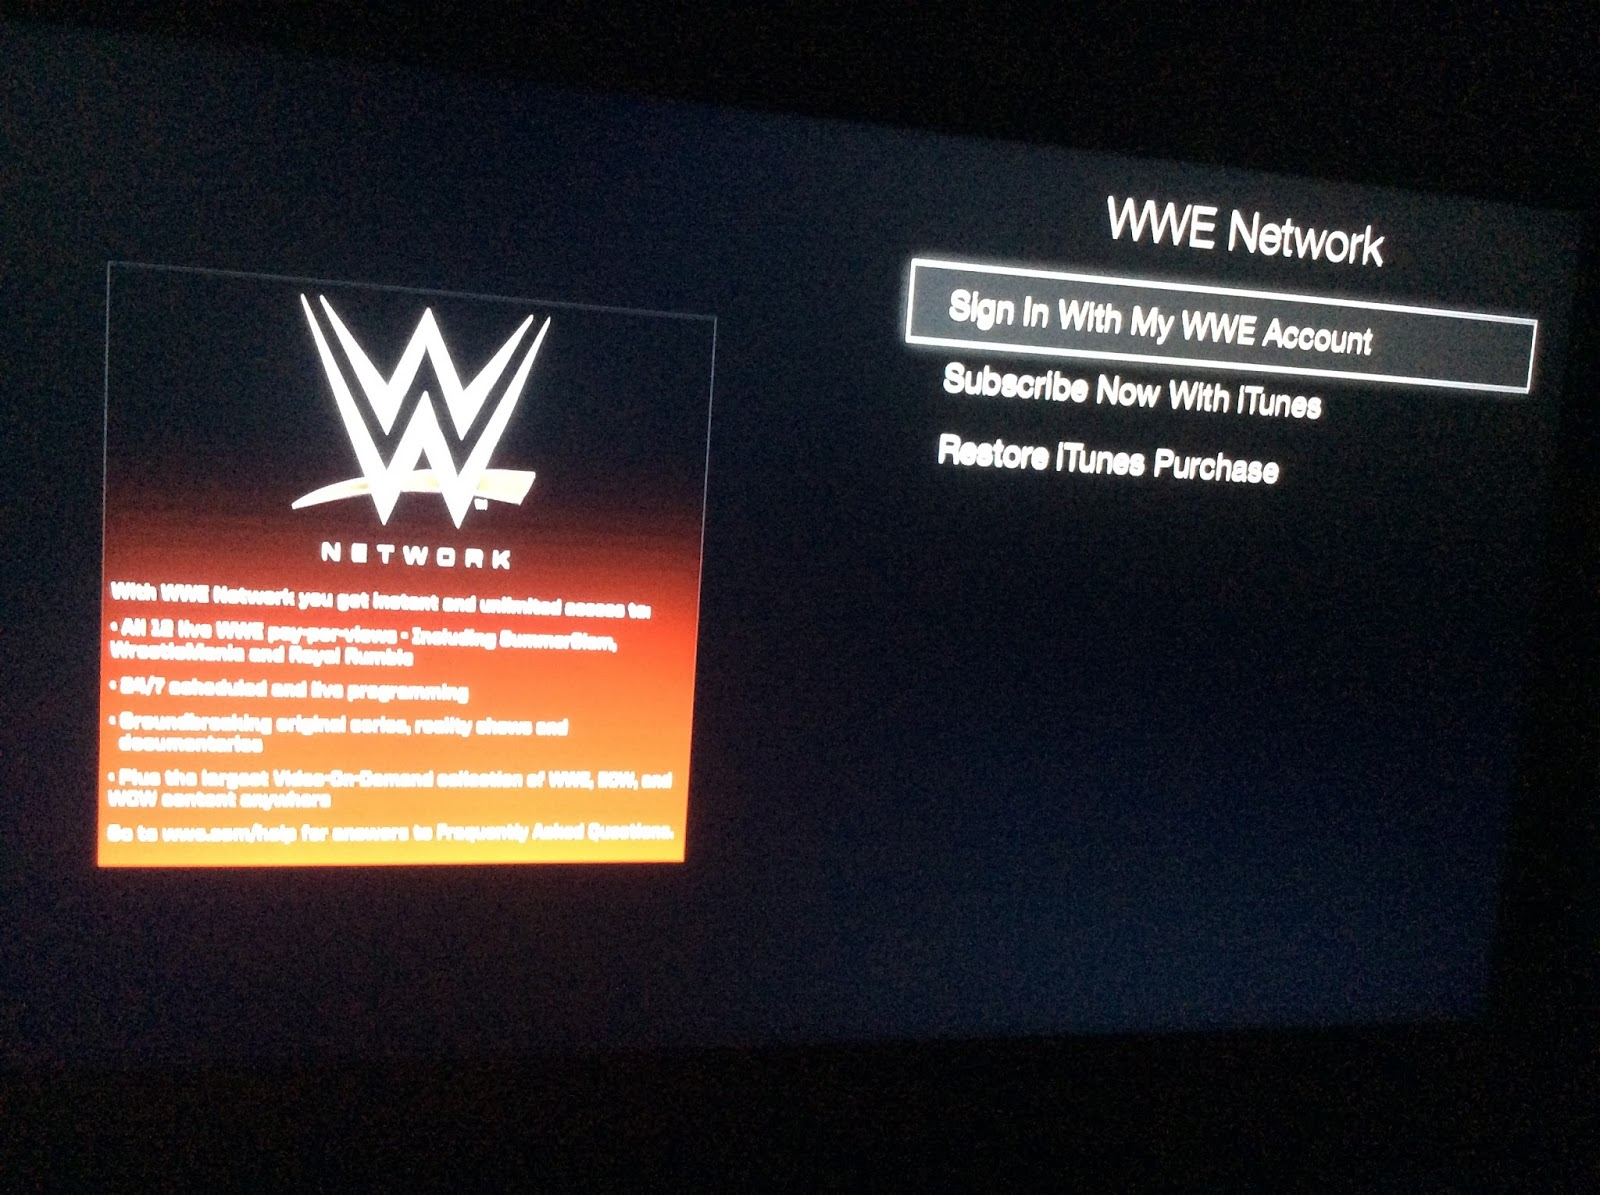 WWELEAKS.ORG: How To Get The WWE Network Early On A UK